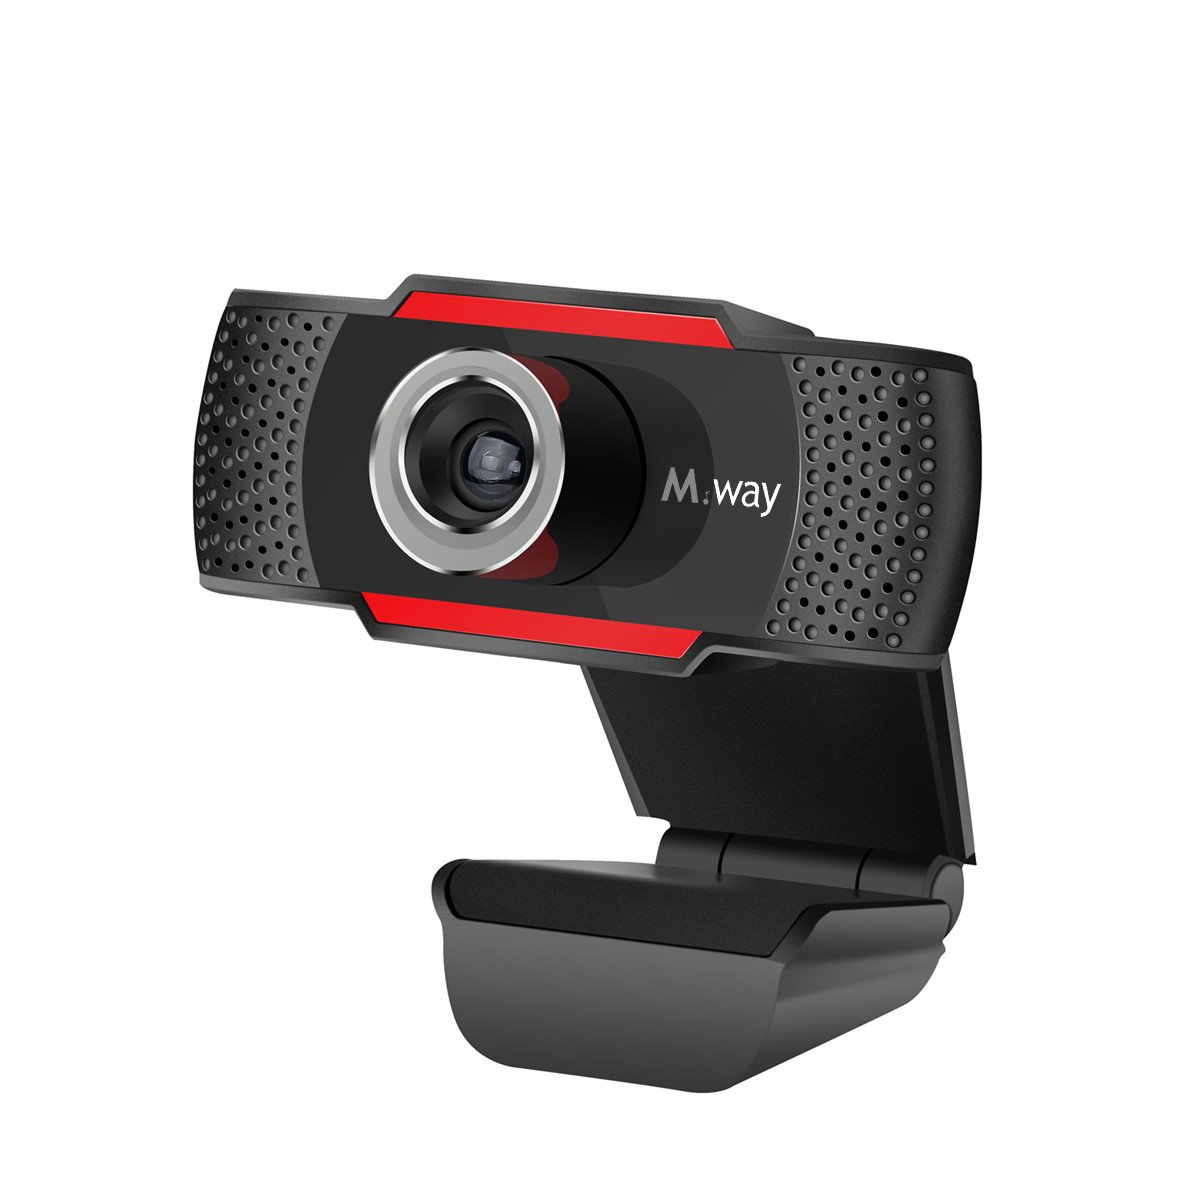 Webcam HD 720p, M.Way USB Cá mara Web de Alta Definició n con Micró fono Cá mara de PC para Skype/MSN/Facebook/Google Hangouts Yahoo! Messenger compatible con Windows 7, Windows 8, Windows 10 Mac OS 10.6 M.WAYNOV212FE2